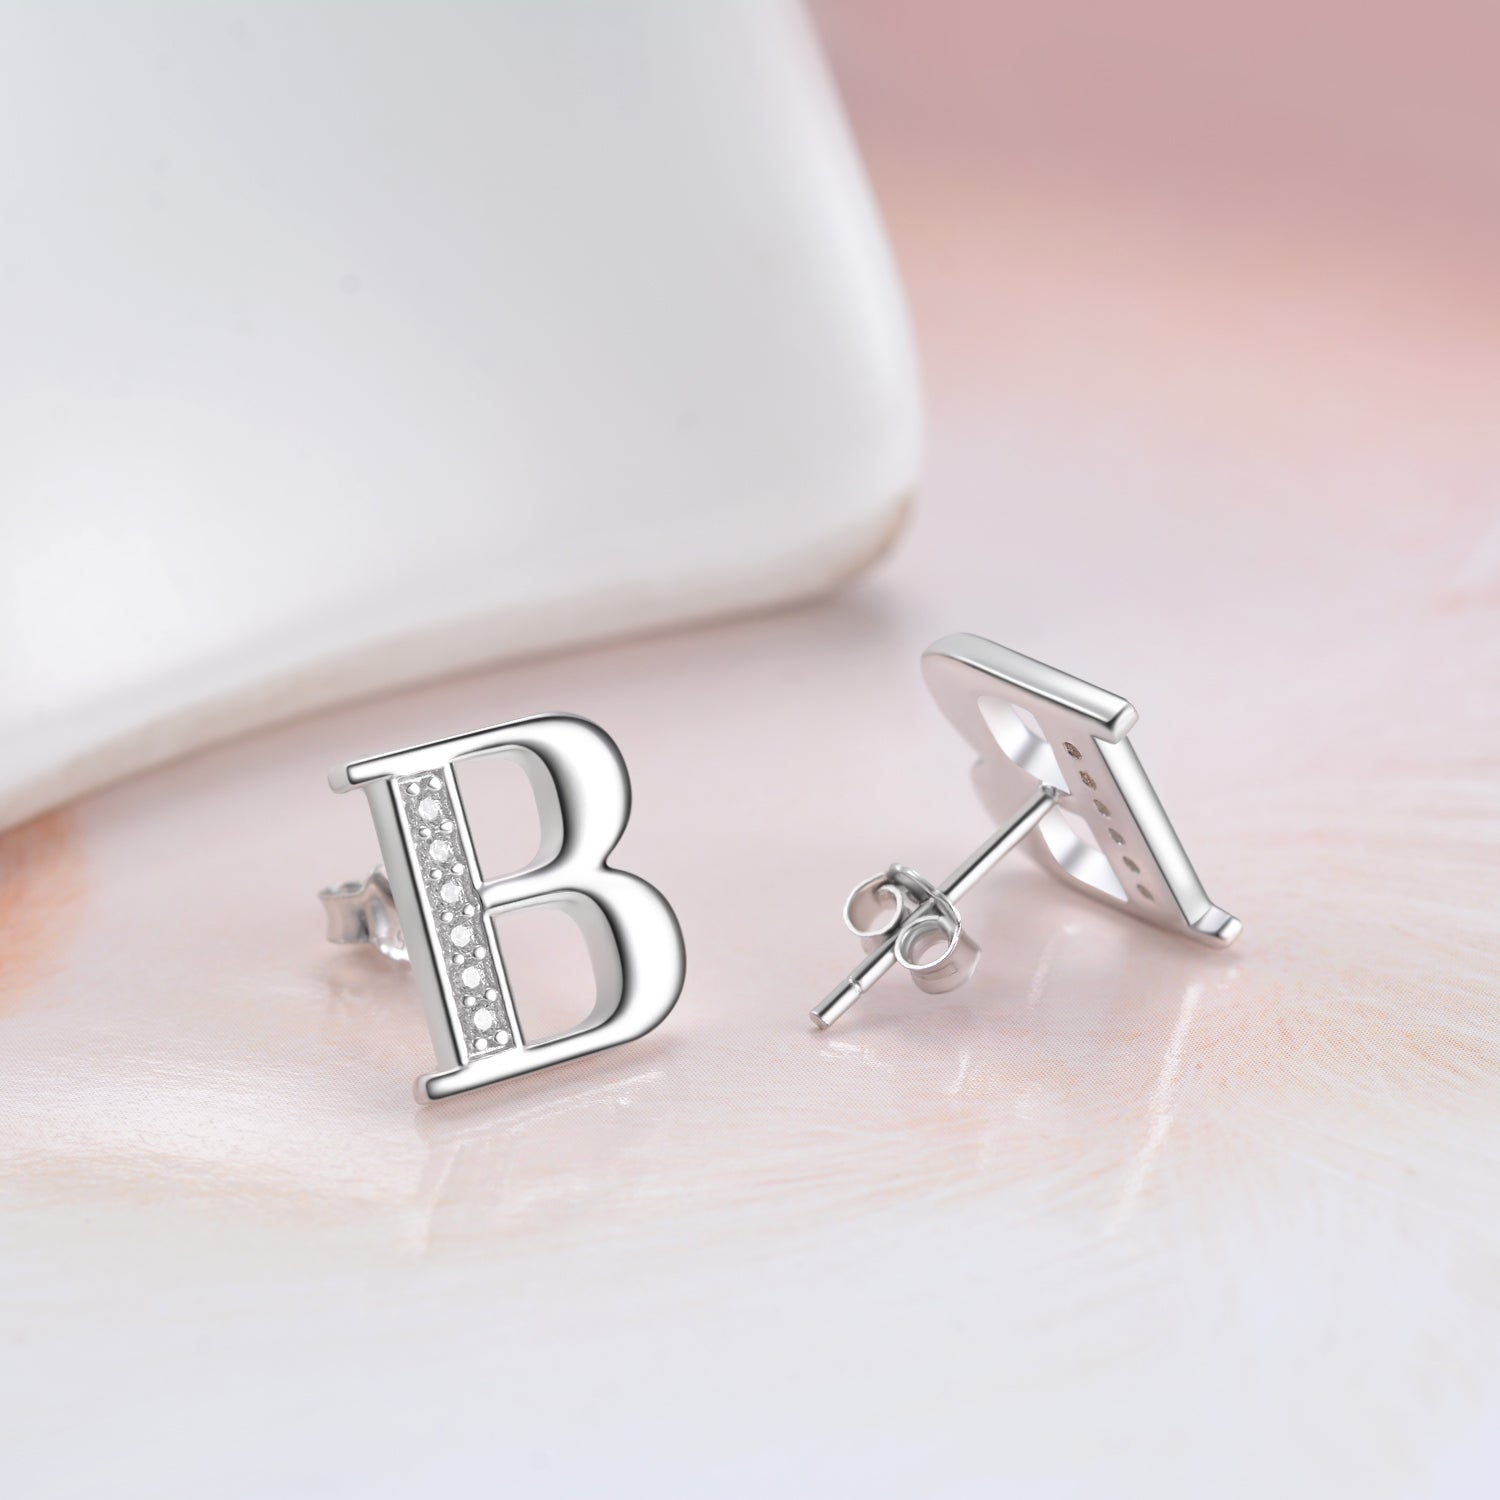 Letter B Cubic Zirconia Earrings Design 925 Sterling Silver Jewelry Earrings